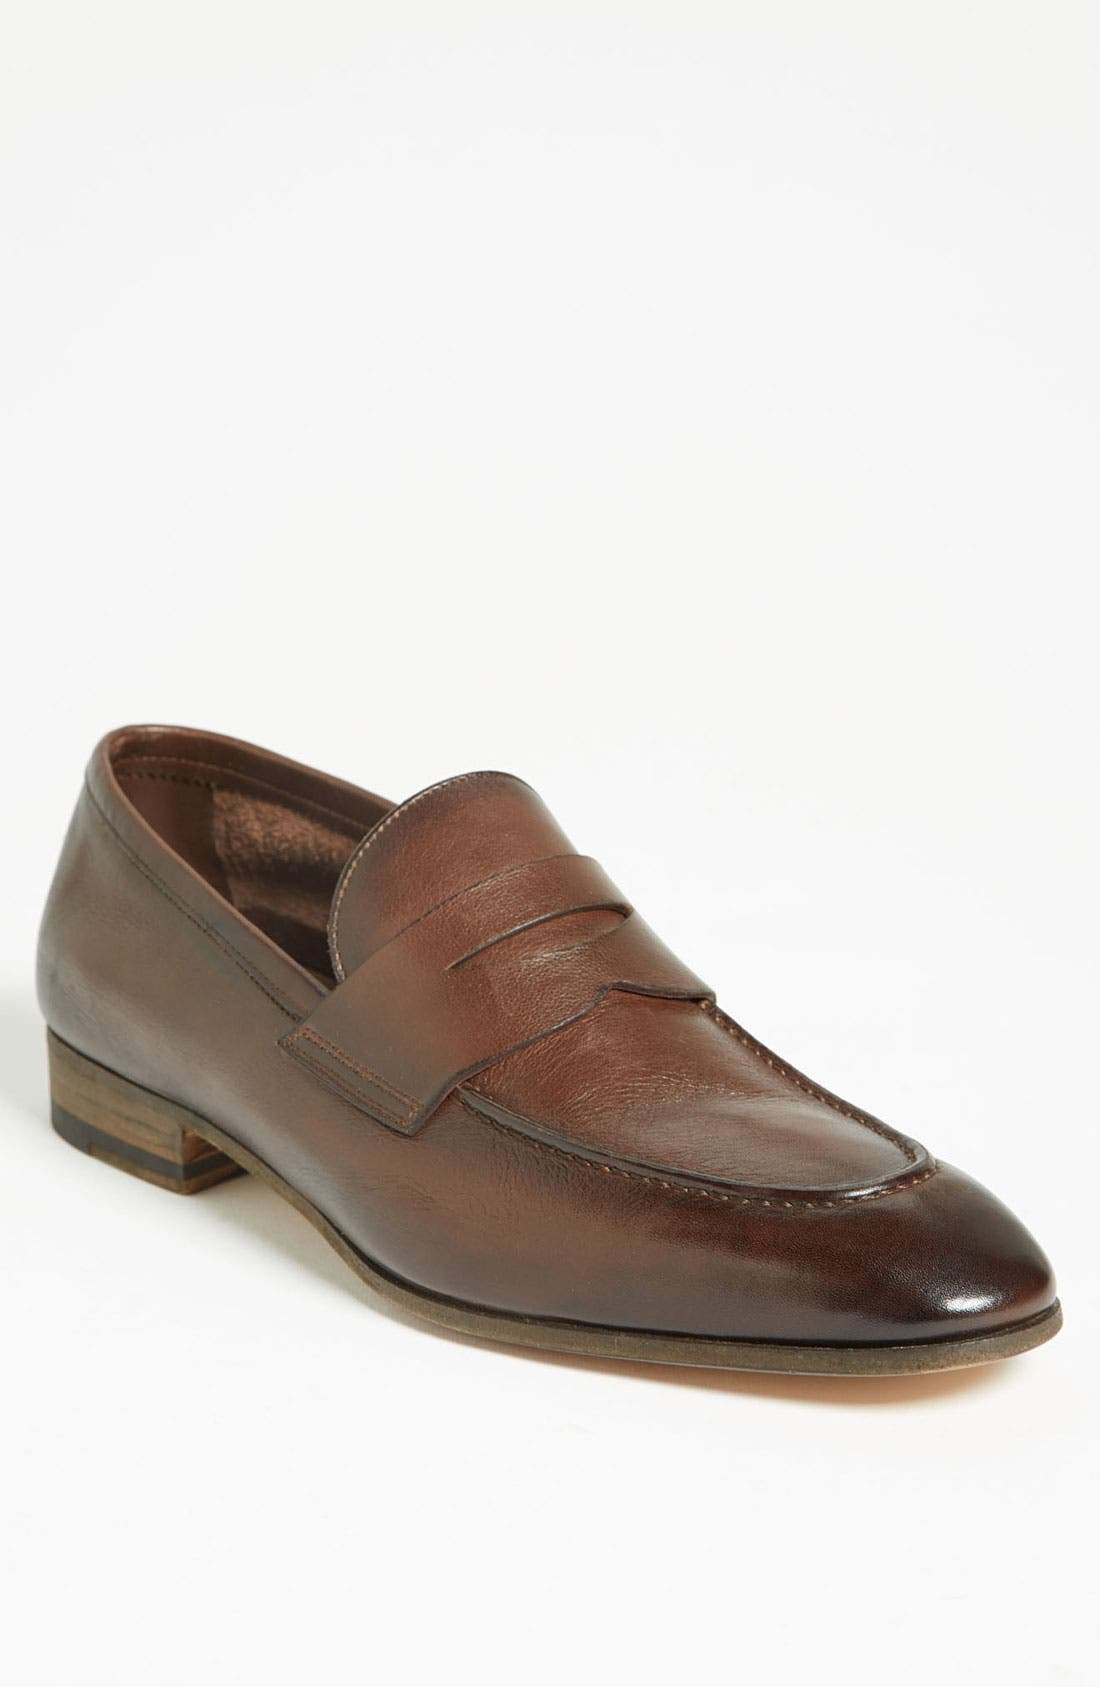 Main Image - Santoni 'Tristan' Penny Loafer (Men)